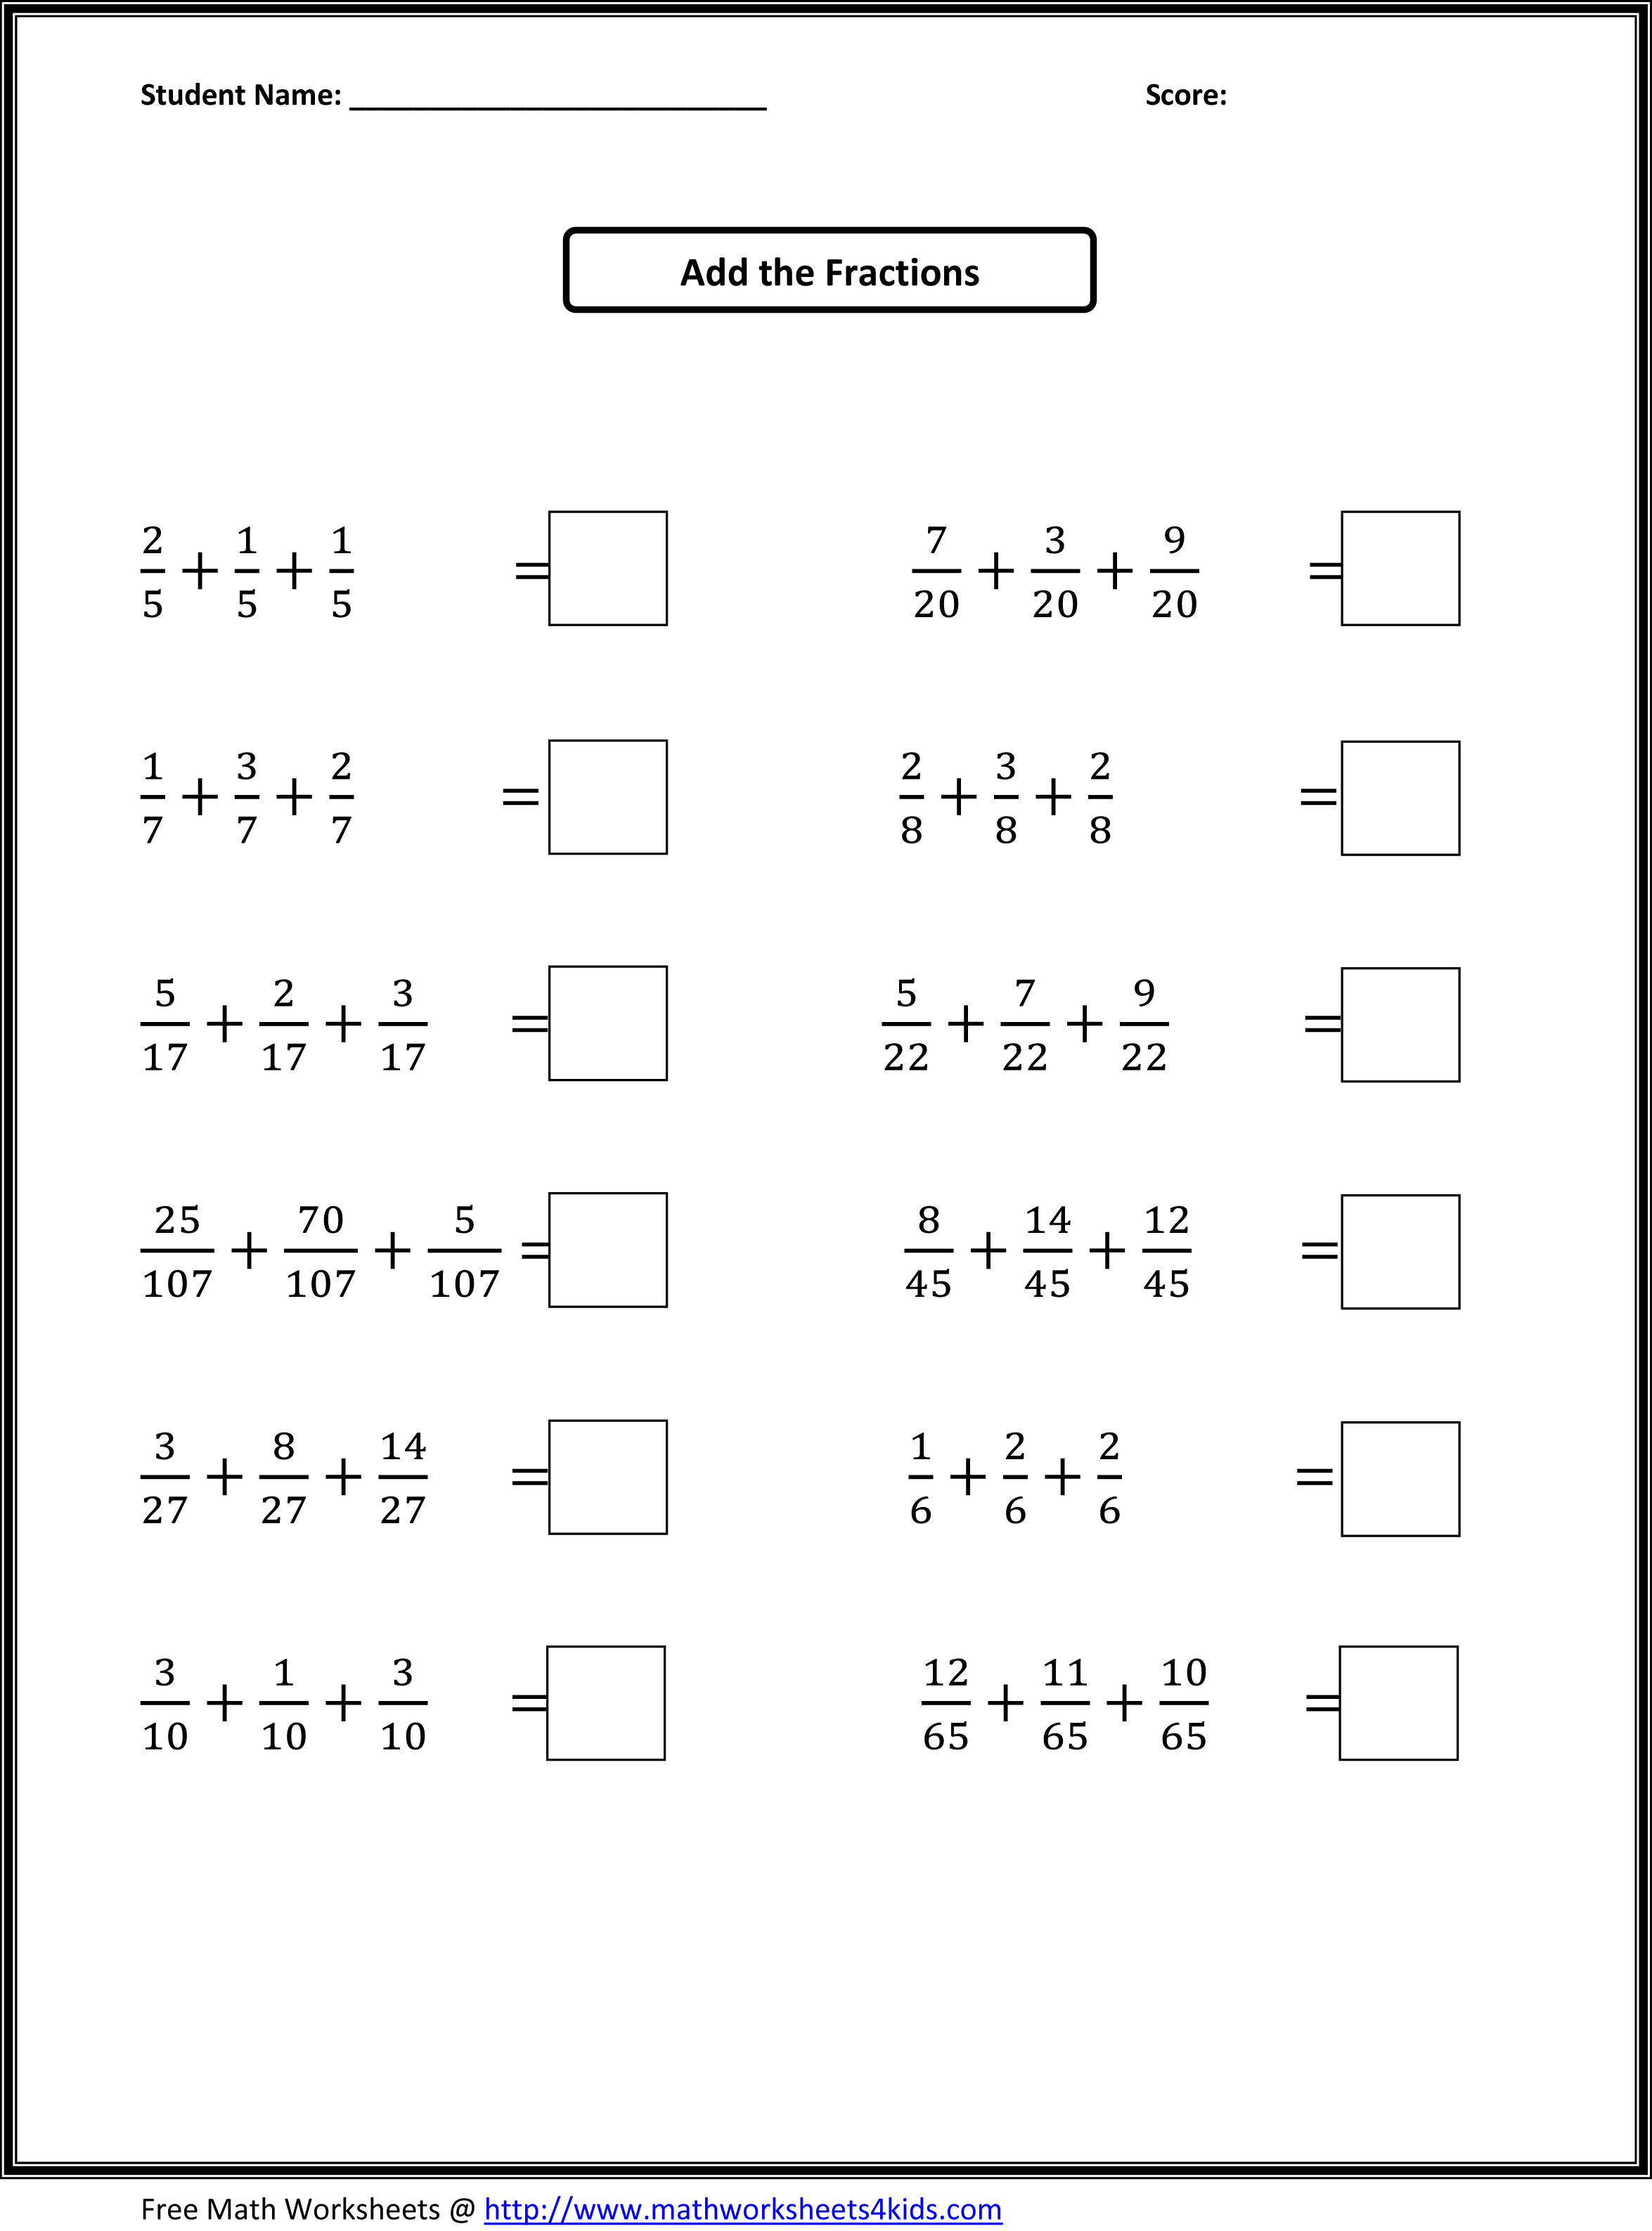 Worksheet Grade 4 Worksheets To Print 4th grade math worksheets multiplying fractions kids activities addition of worksheets